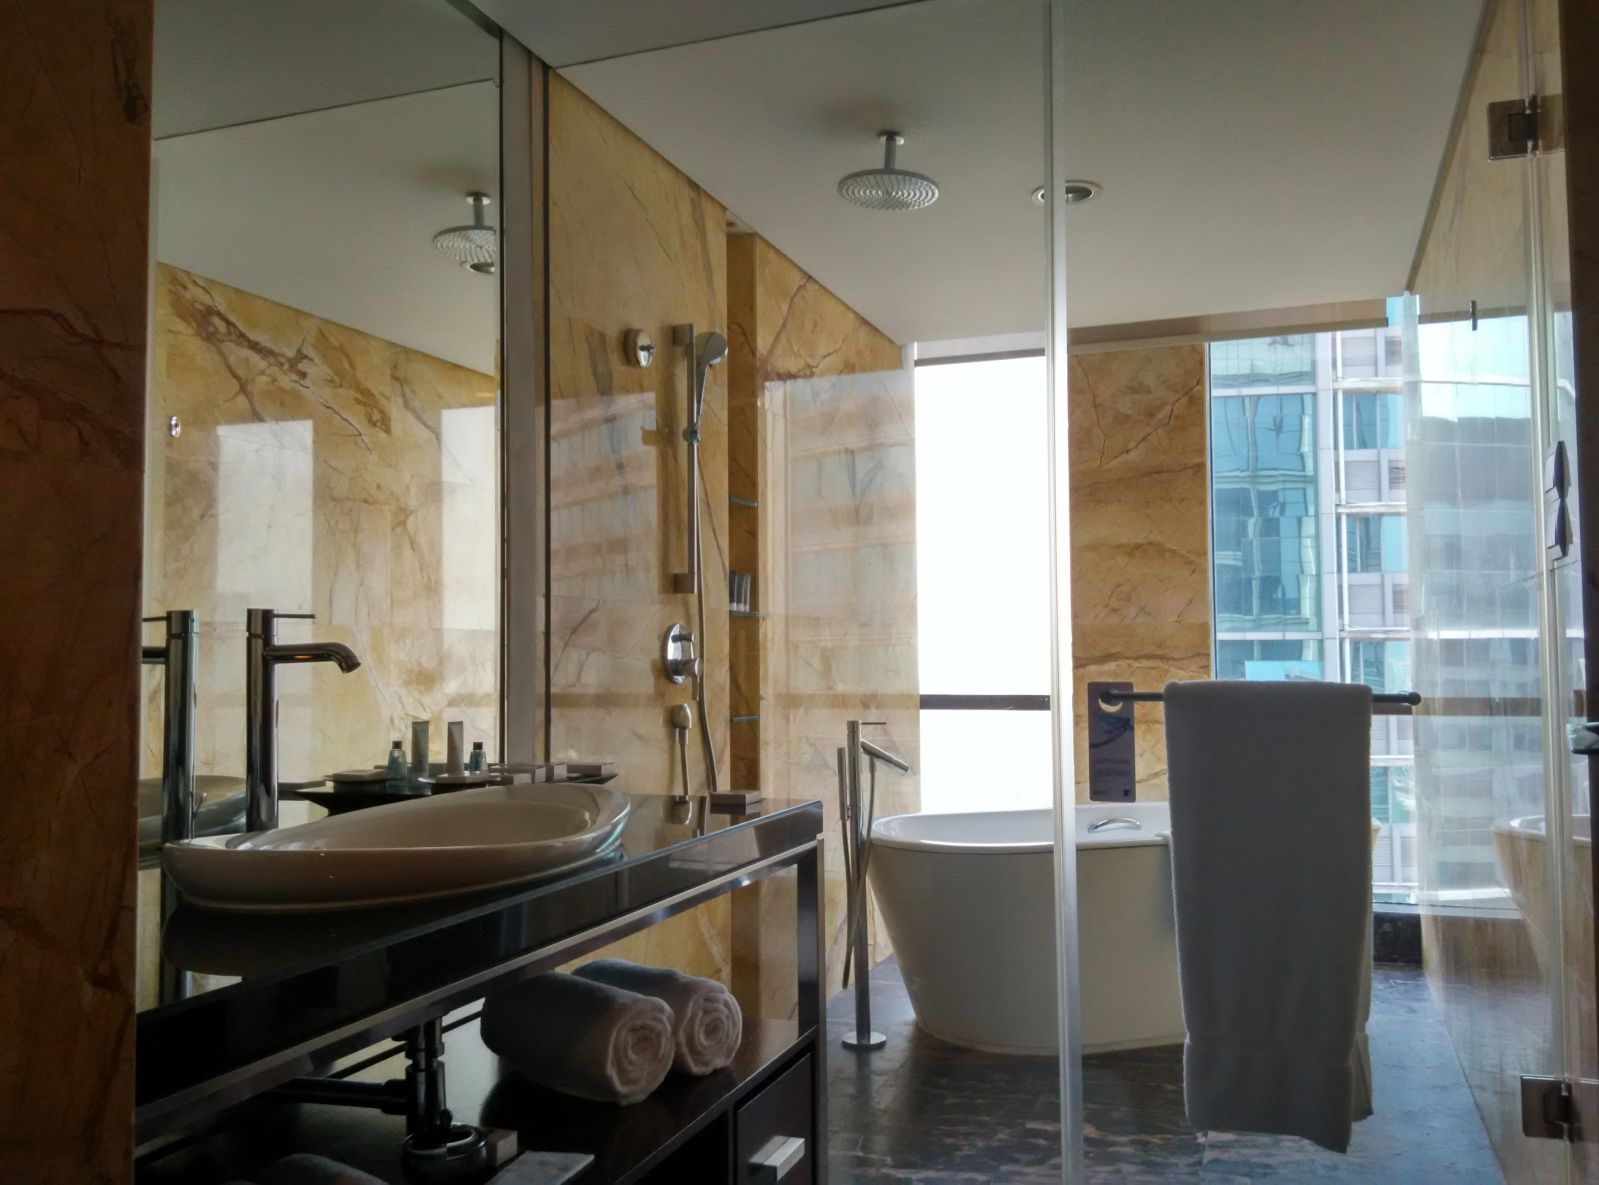 shenzhen-jw-marriott-bathroom